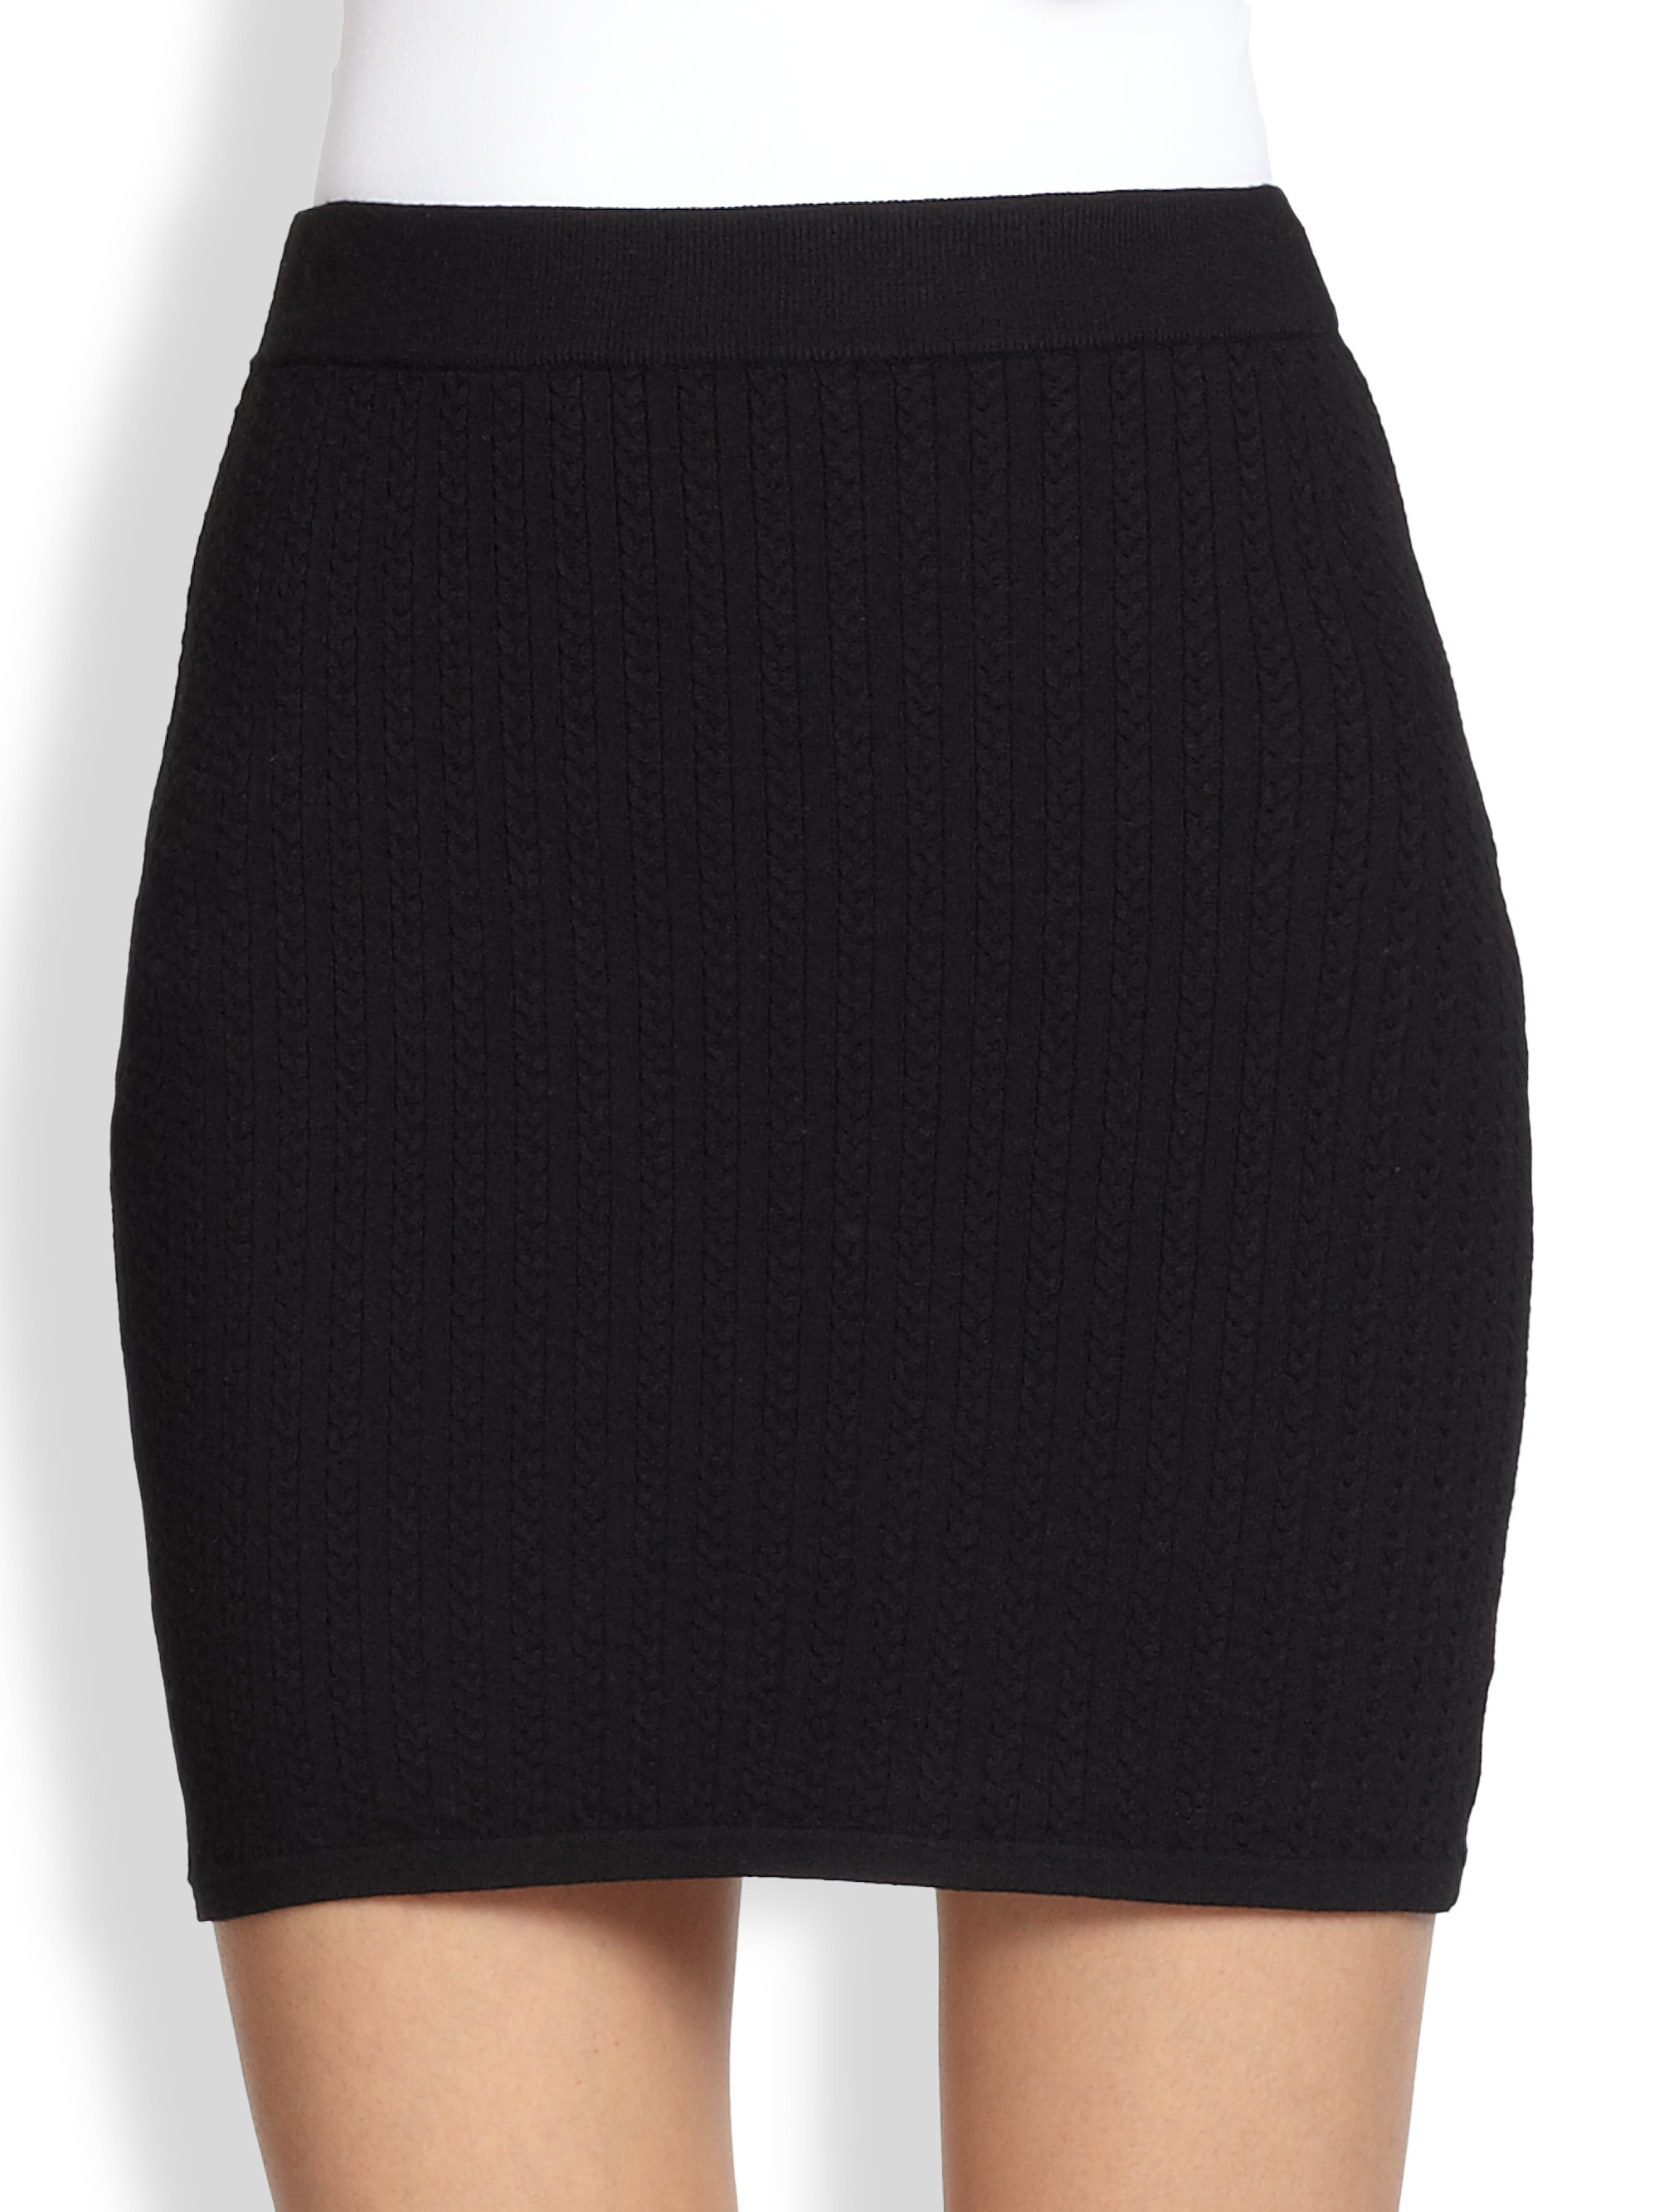 Rag & bone Lyla Ribbed Cableknit Mini Skirt in Black | Lyst